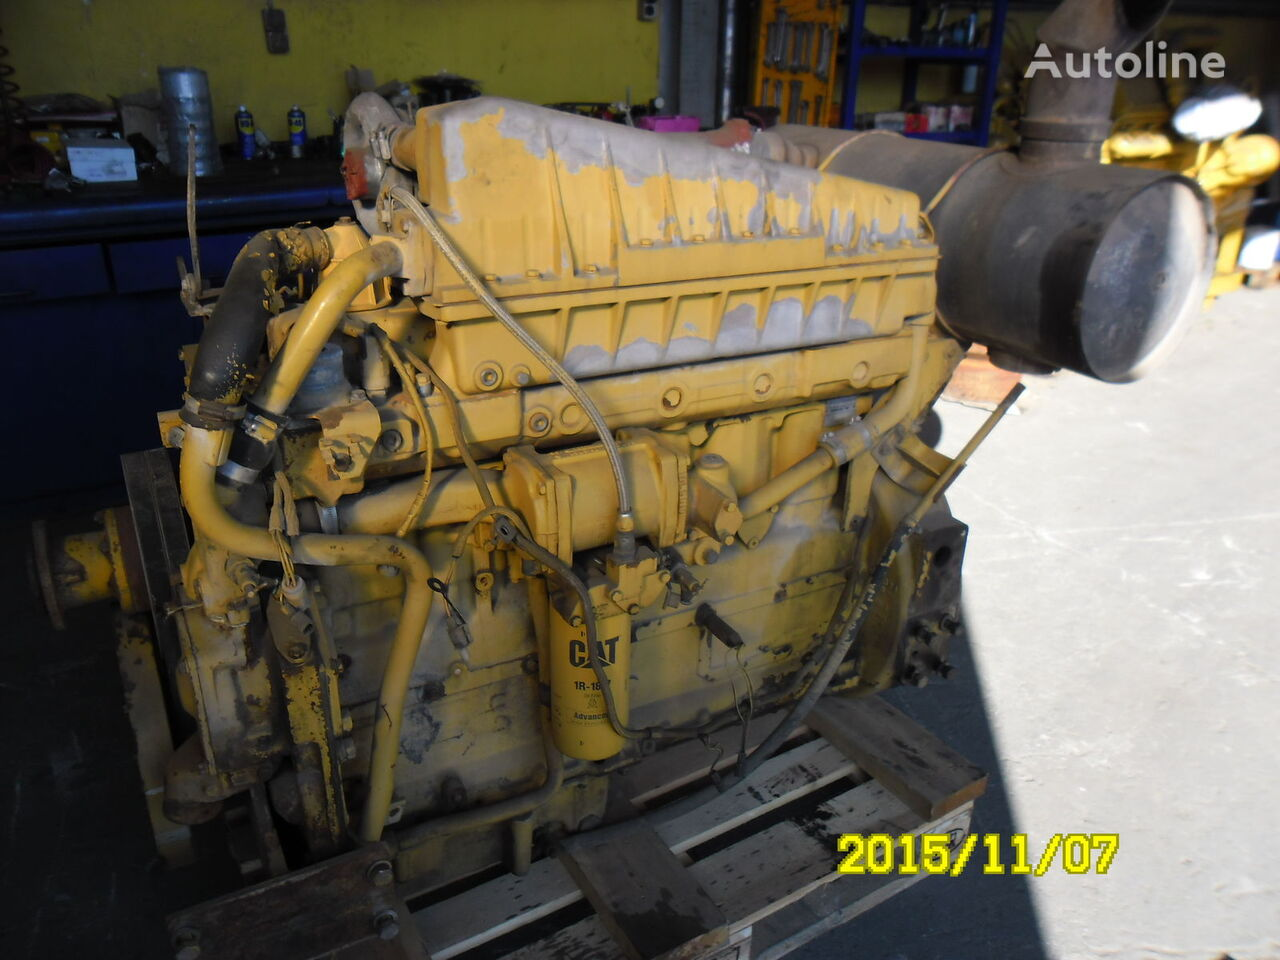 CATERPILLAR 3306 engine for CATERPILLAR 330B excavator